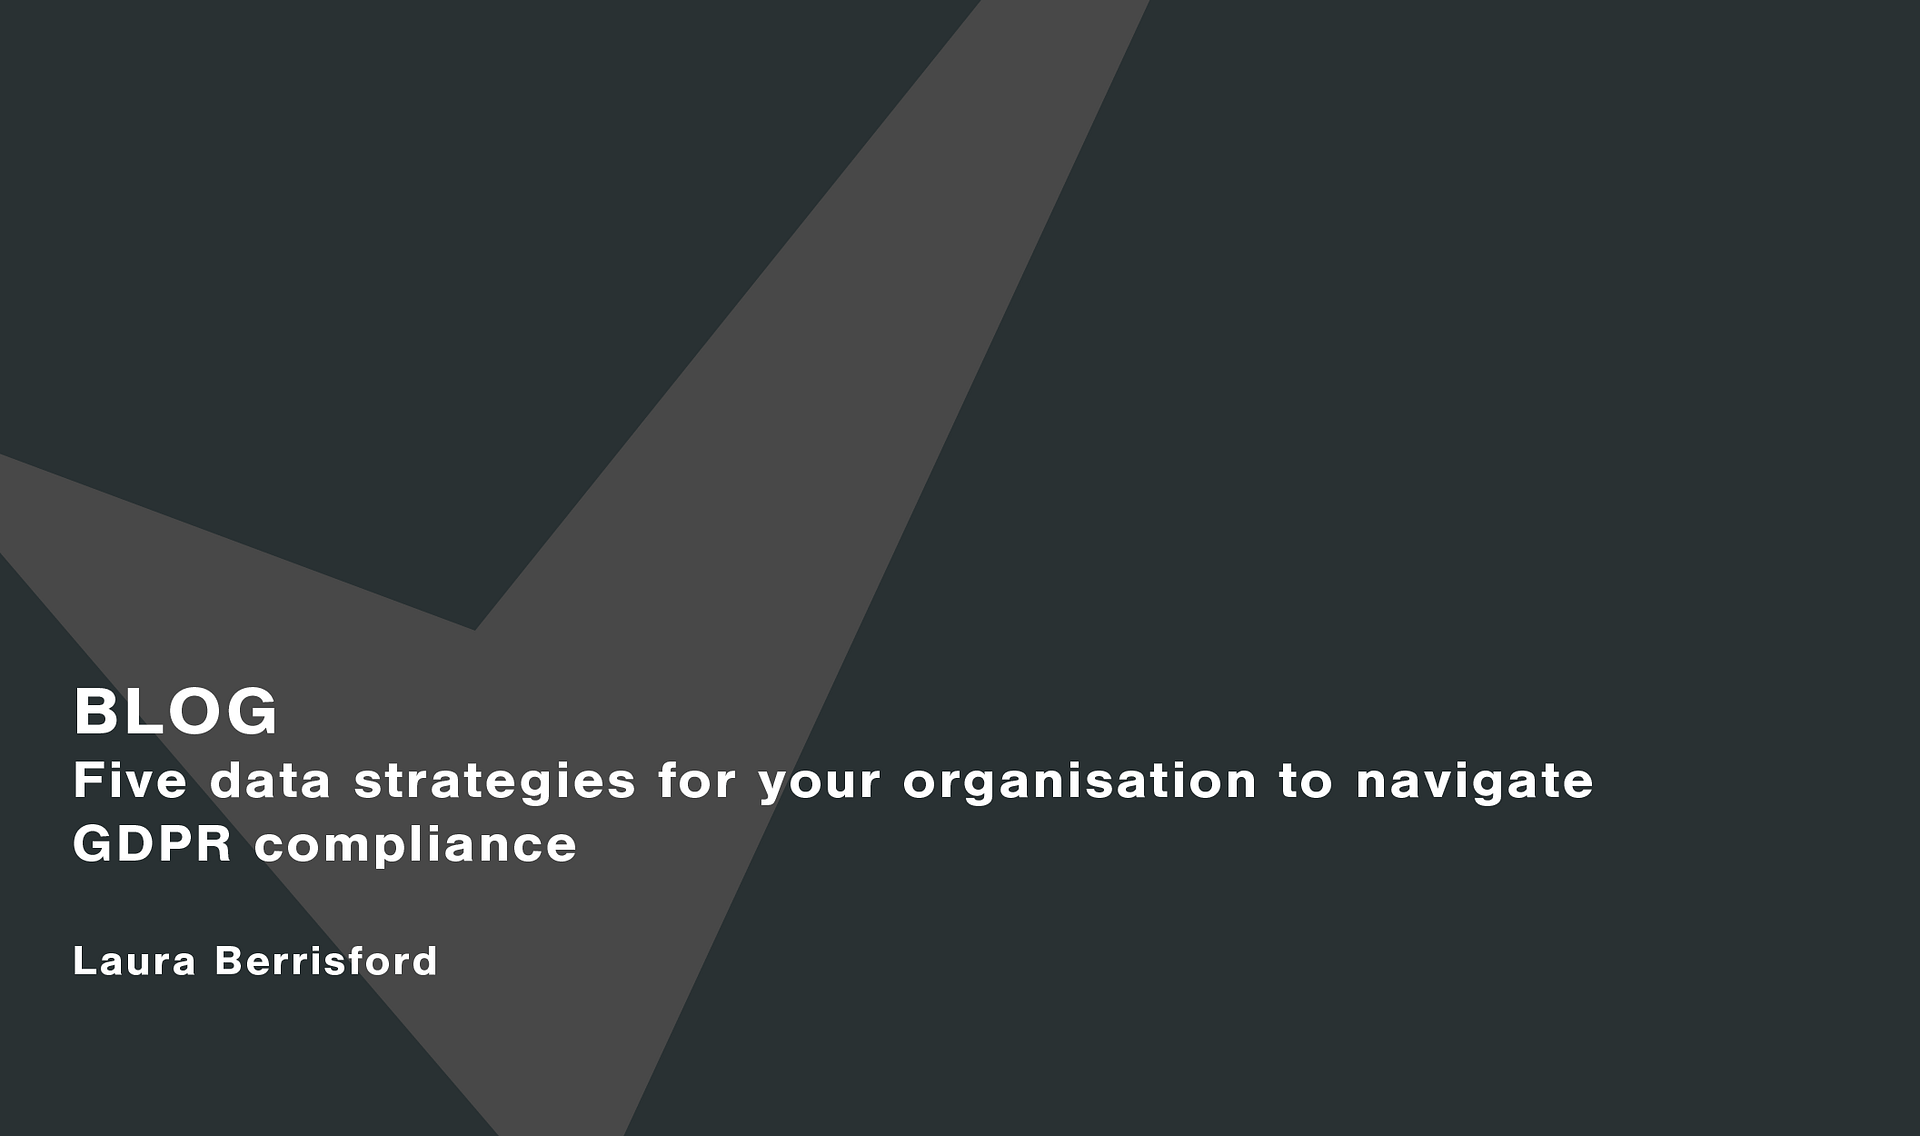 Five data strategies for your organisation to navigate GDPR compliance Cassie personal information & consent management